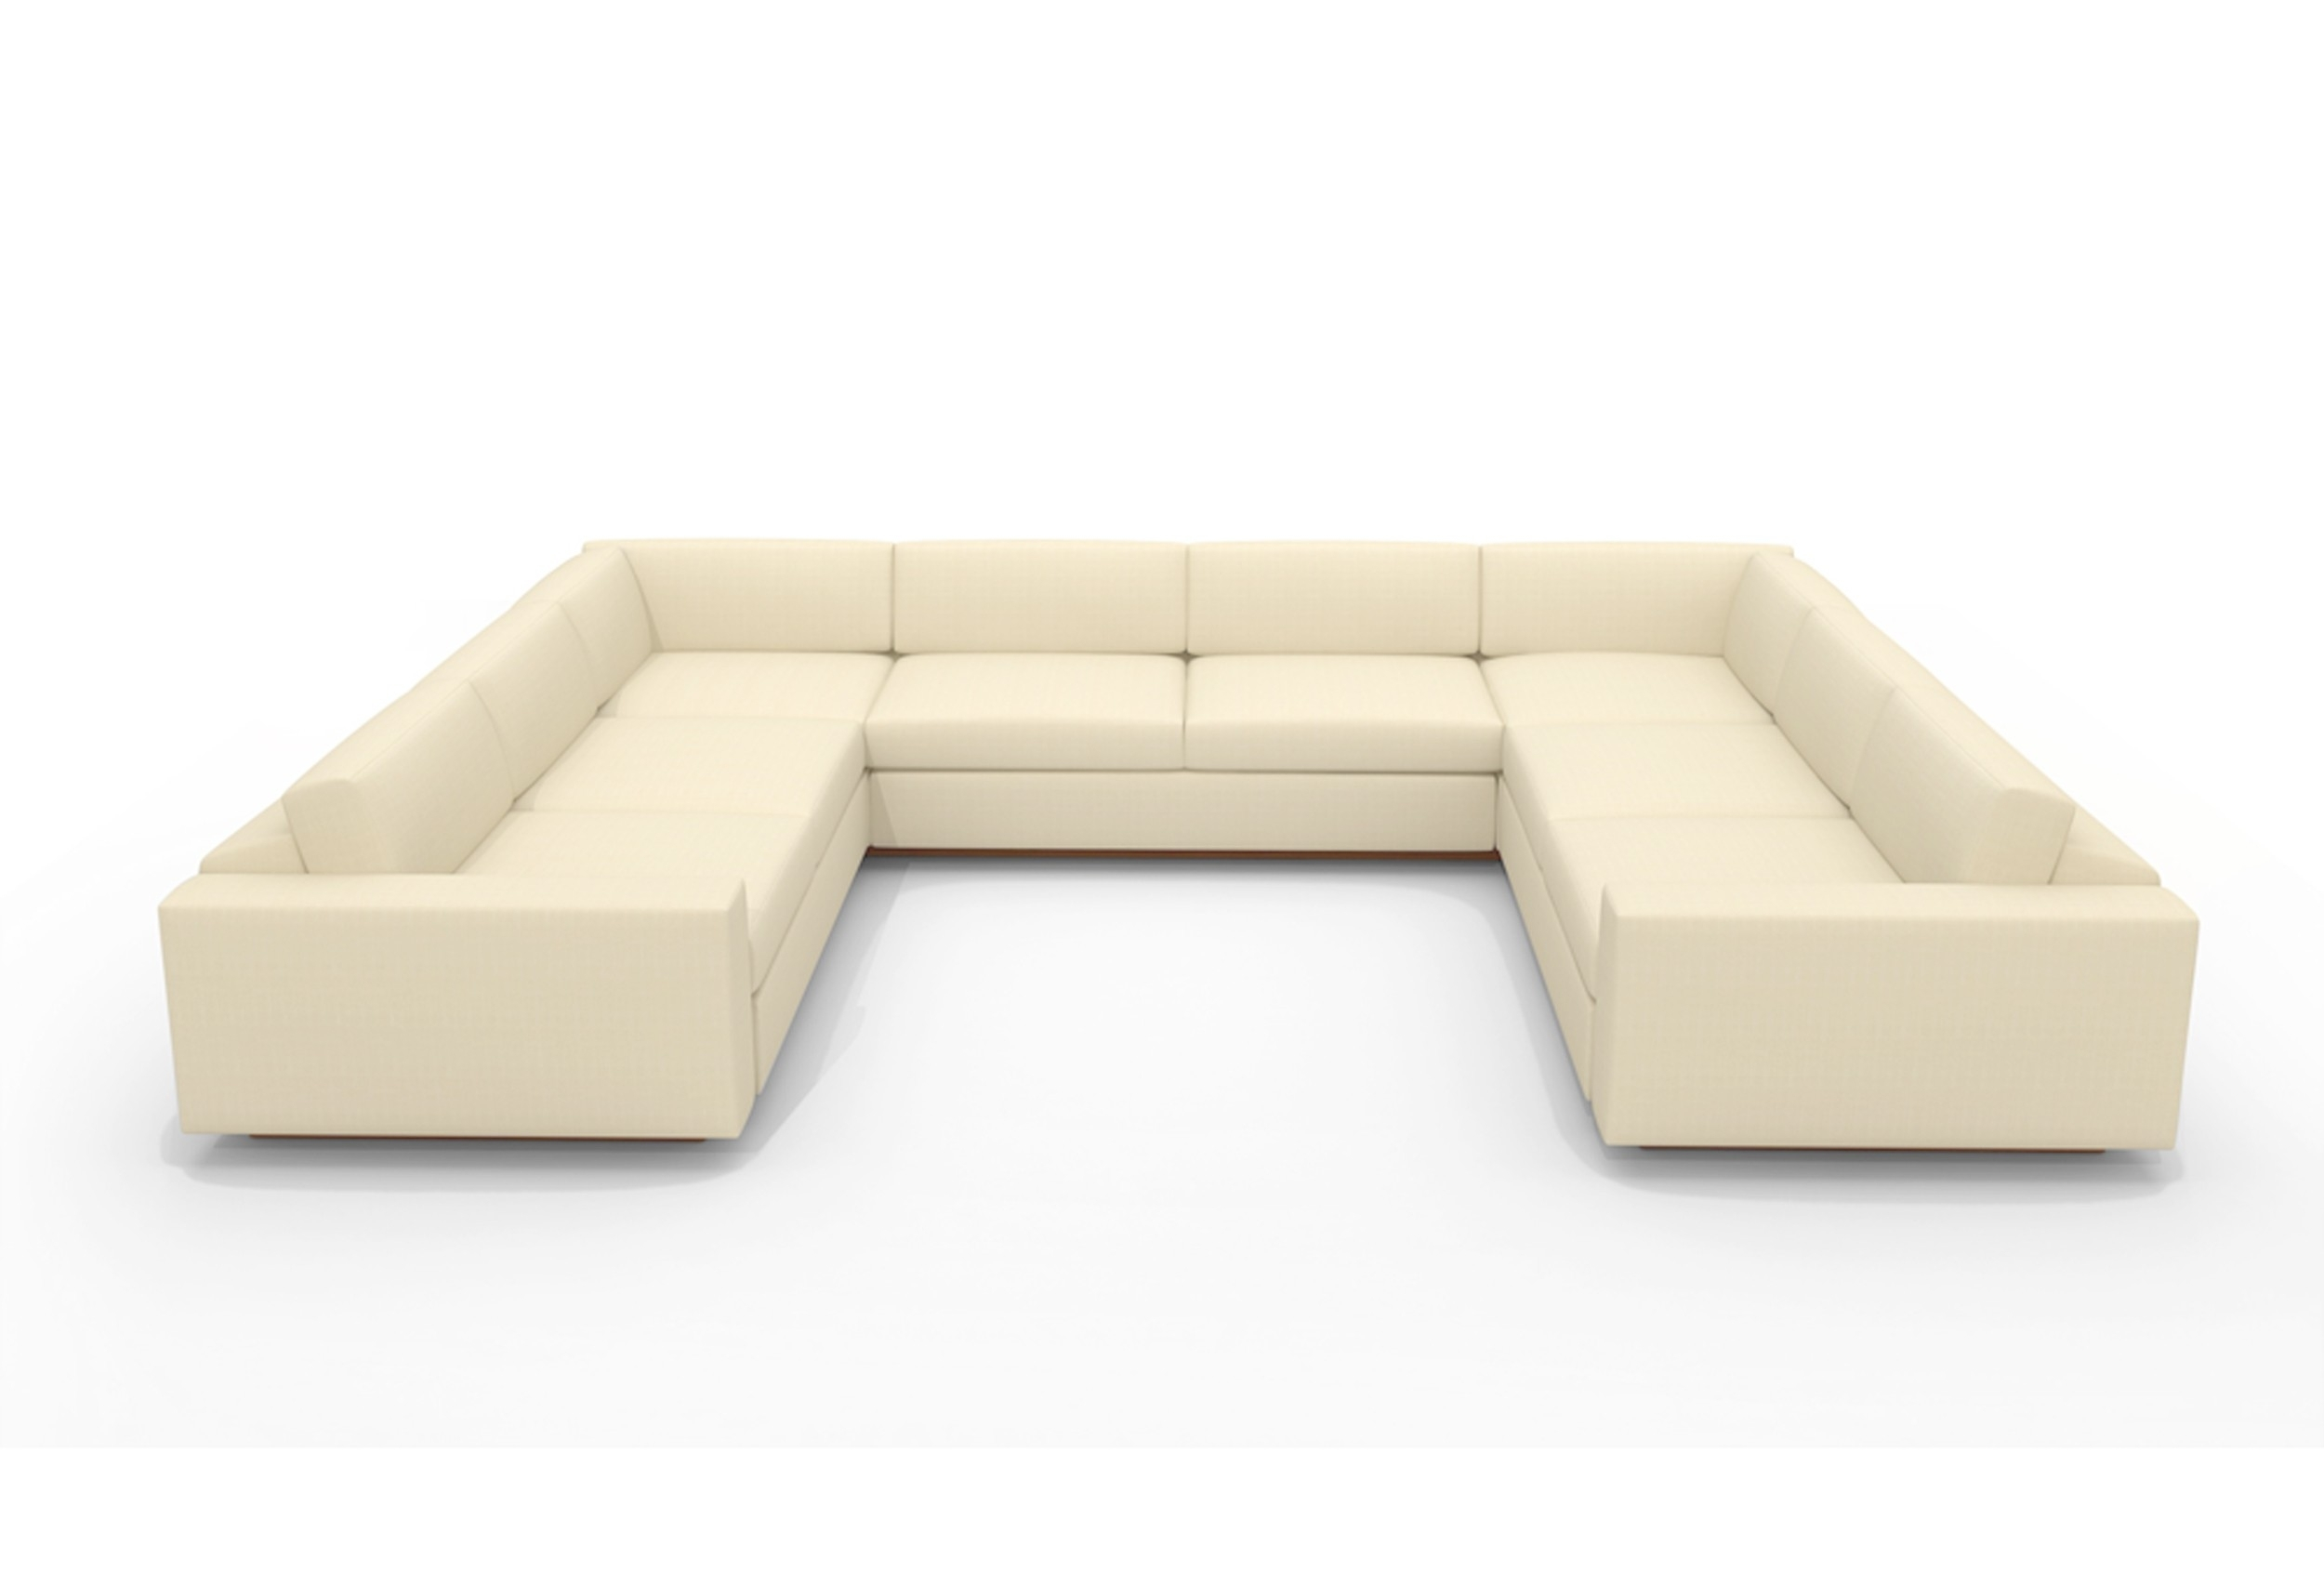 U Shaped White Leather Sectional Sofa With Back And Arm Of Marvelous Throughout U Shaped Leather Sectional Sofas (View 6 of 10)